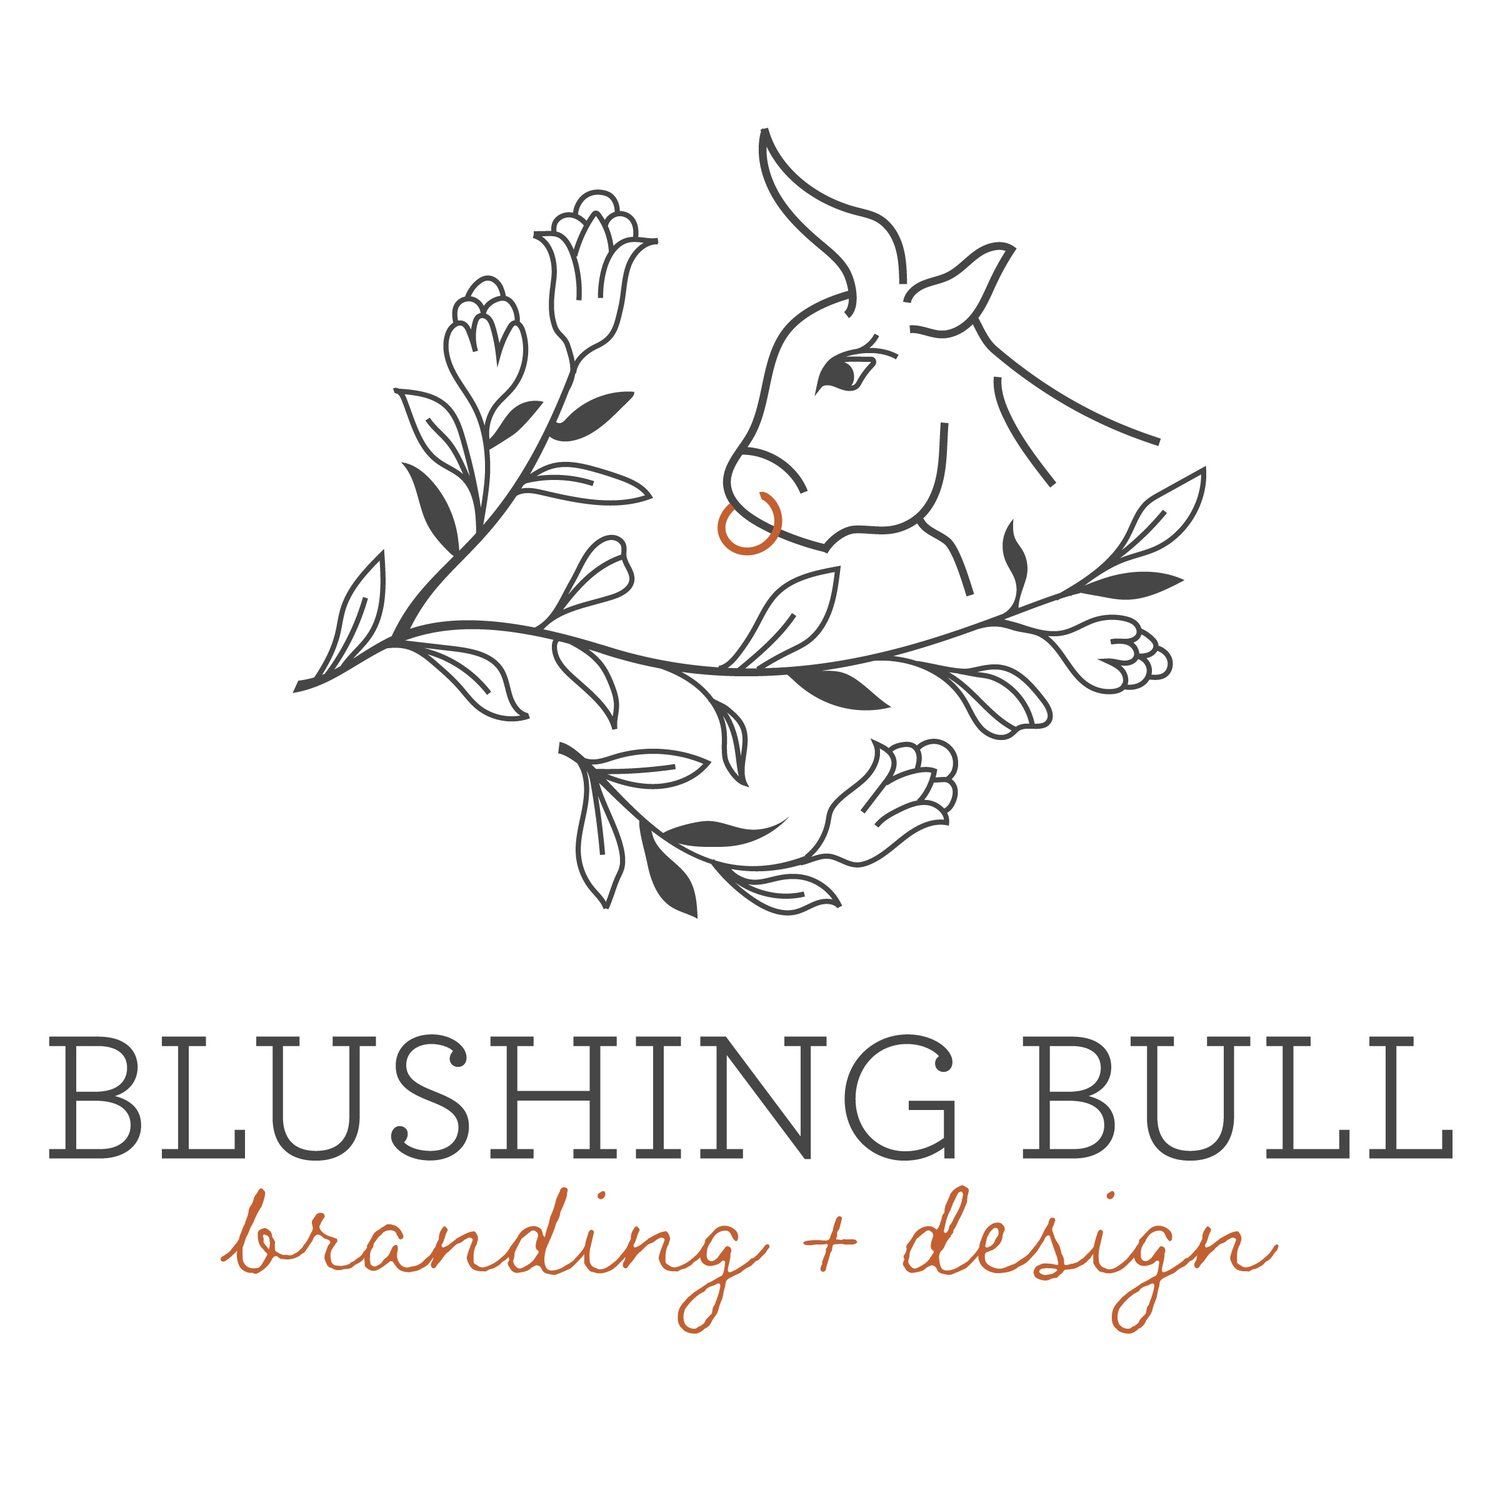 Blushing Bull - Logo, Branding and Graphic Design in Olympia, Washington & Beyond